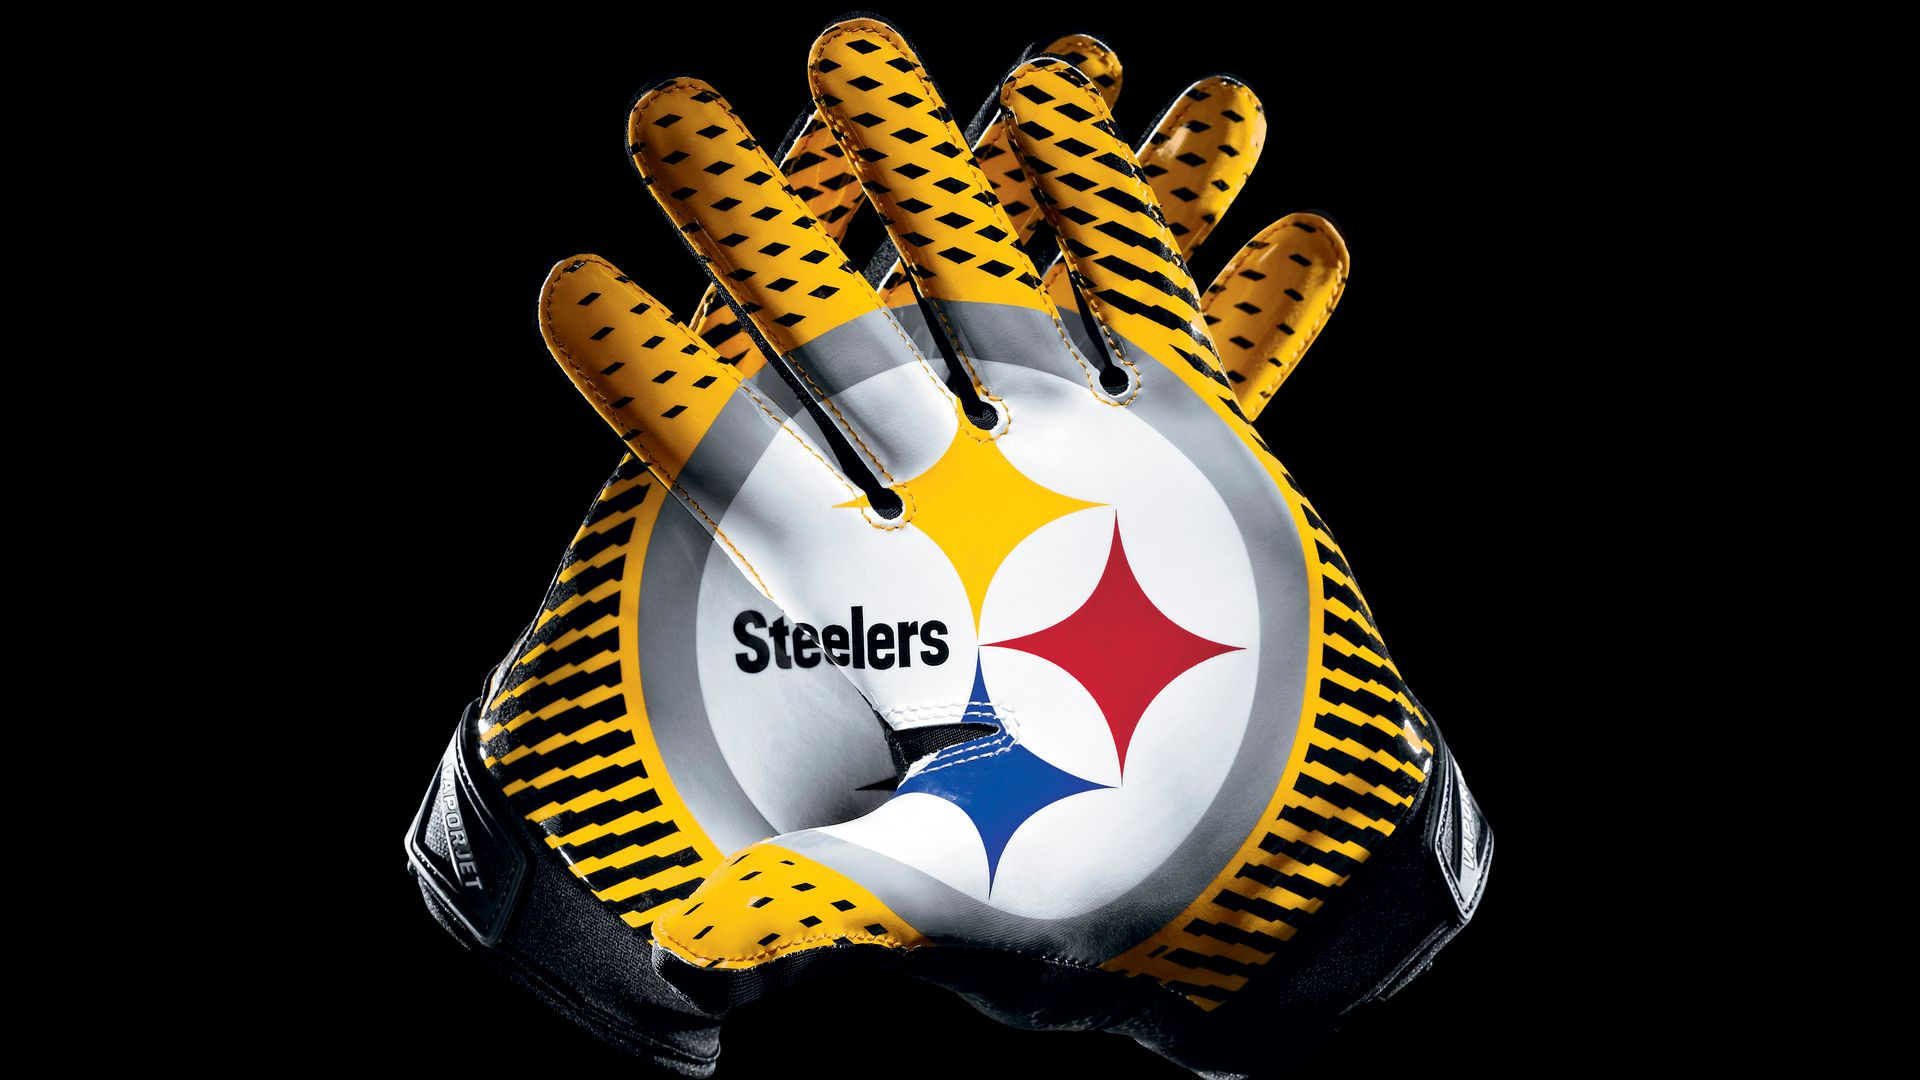 Free Steelers Wallpaper Android × Wallpapers Steelers